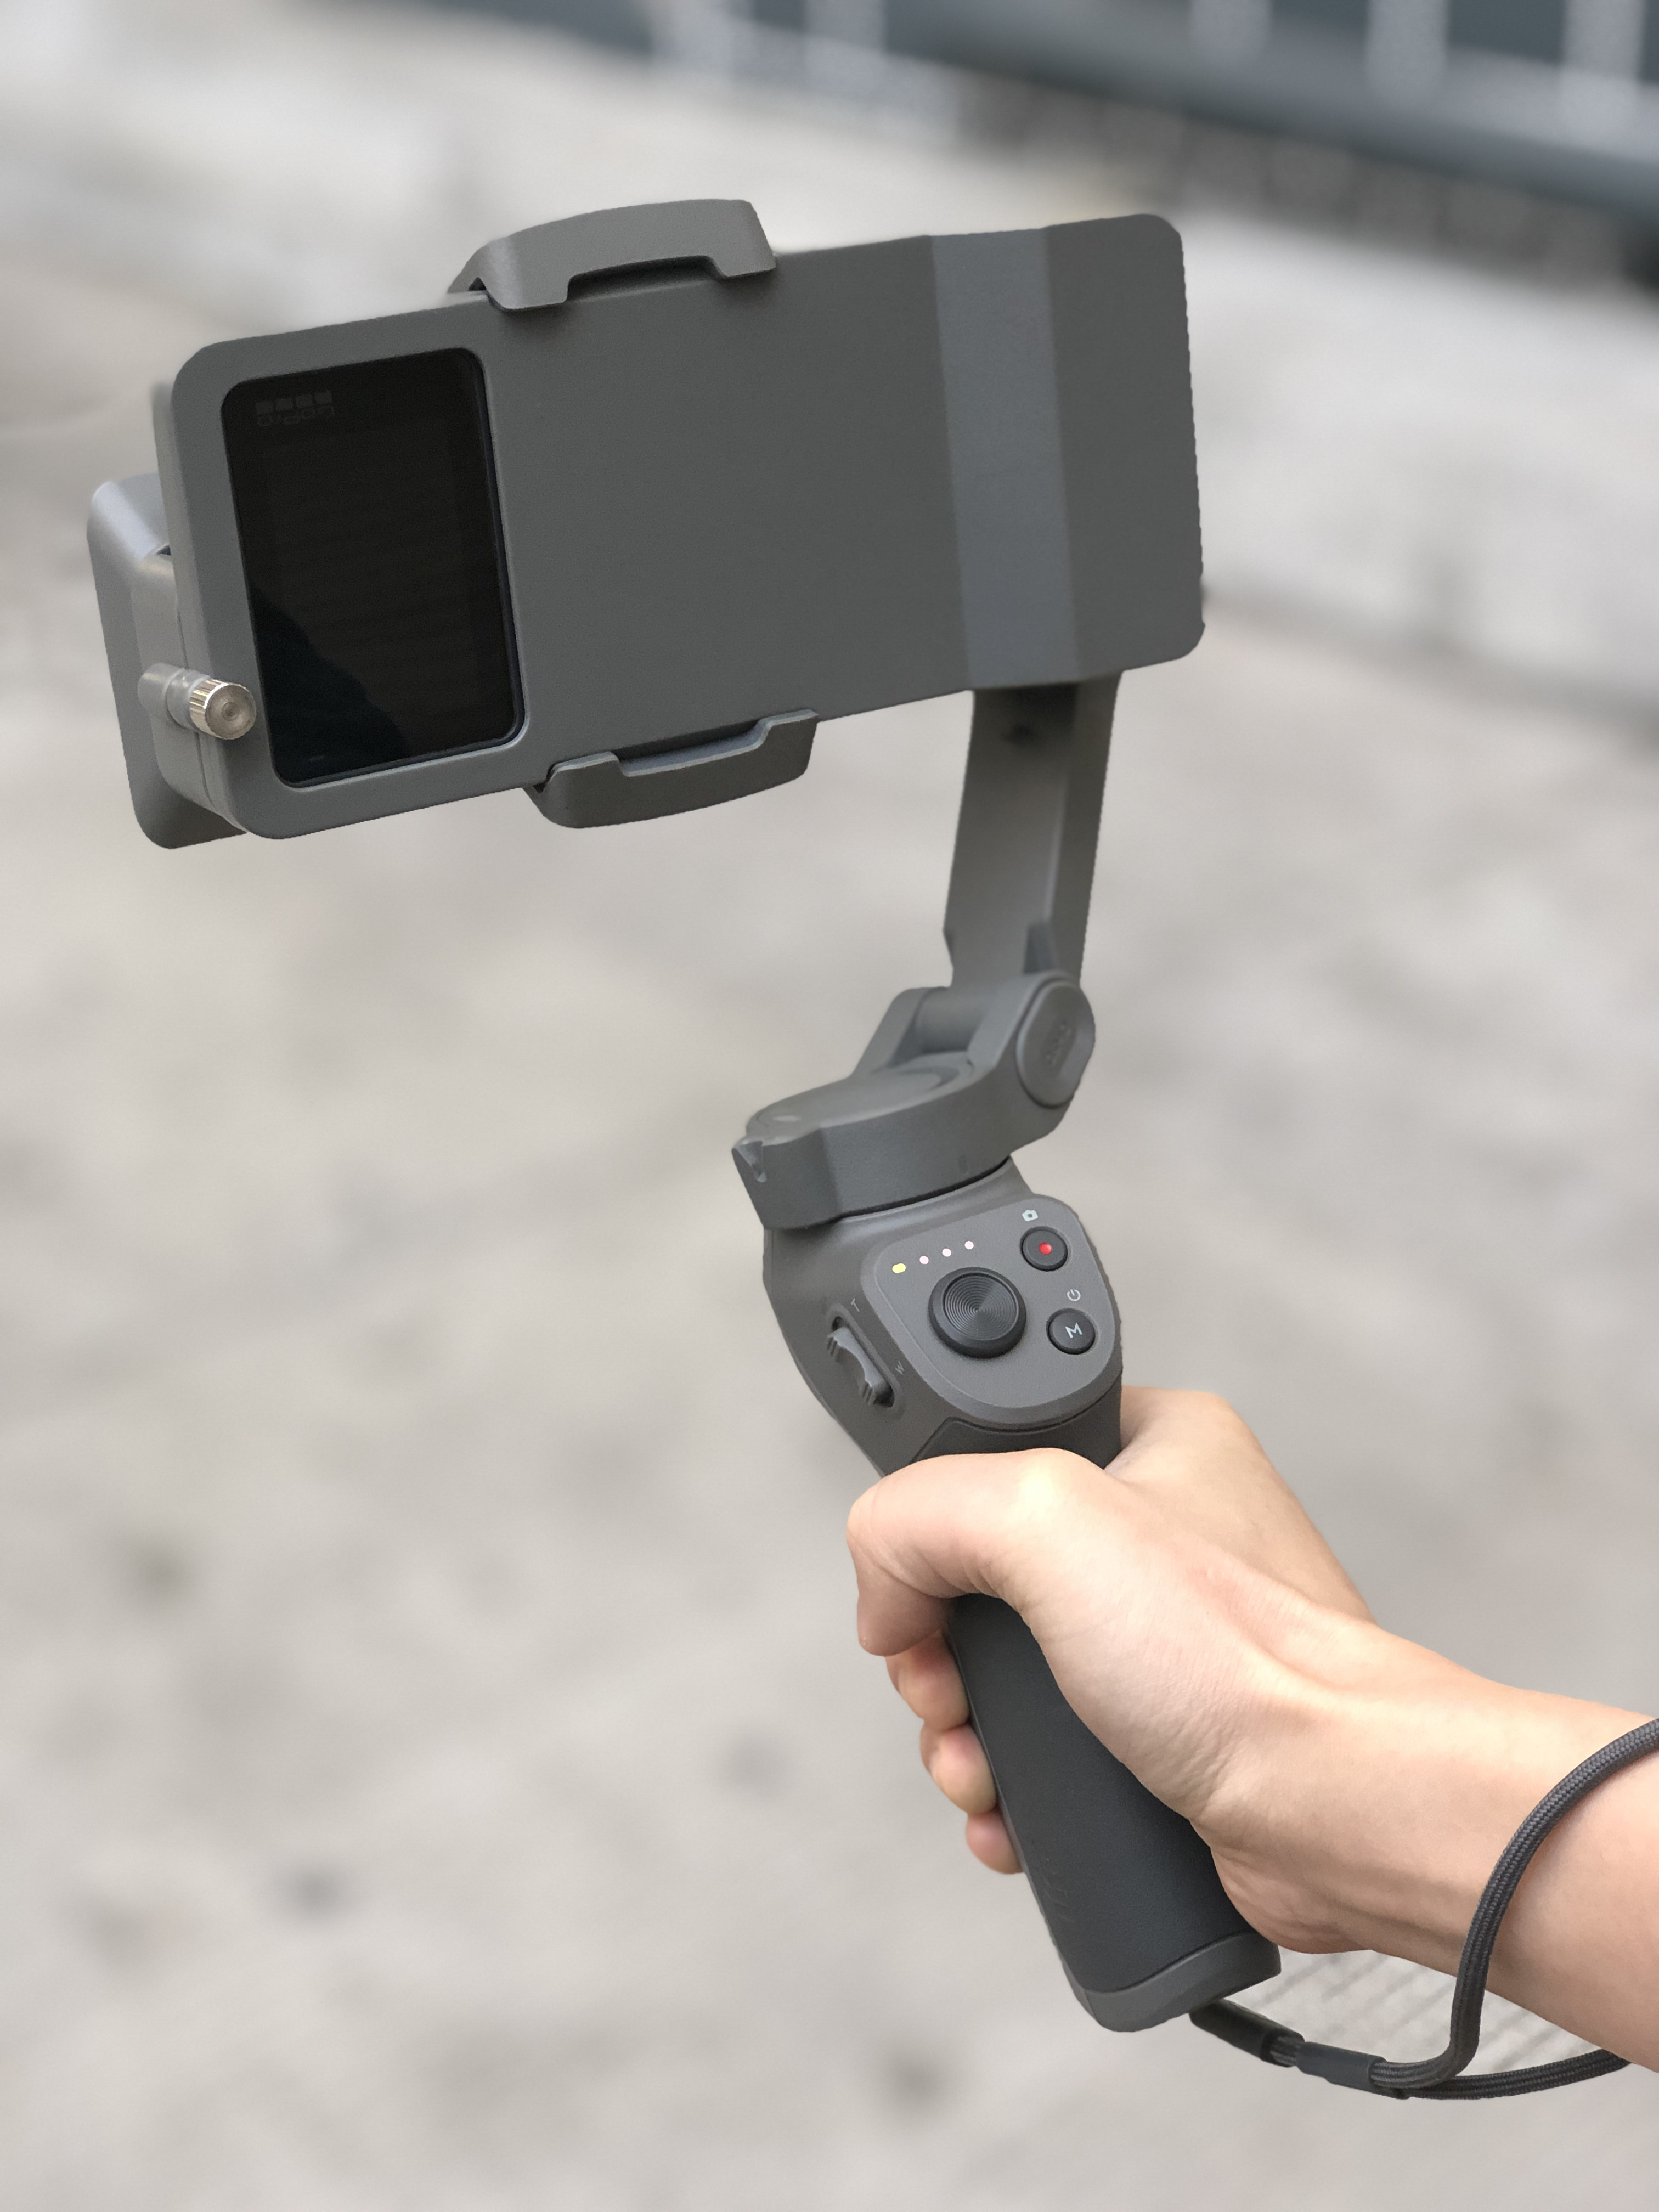 Updated Version Handheld Gimbal Adapter Switch Mount For DJI Osmo Mobile 3 To GoPro Hero 7 6 5 Black Camera Switch Plate Adapter